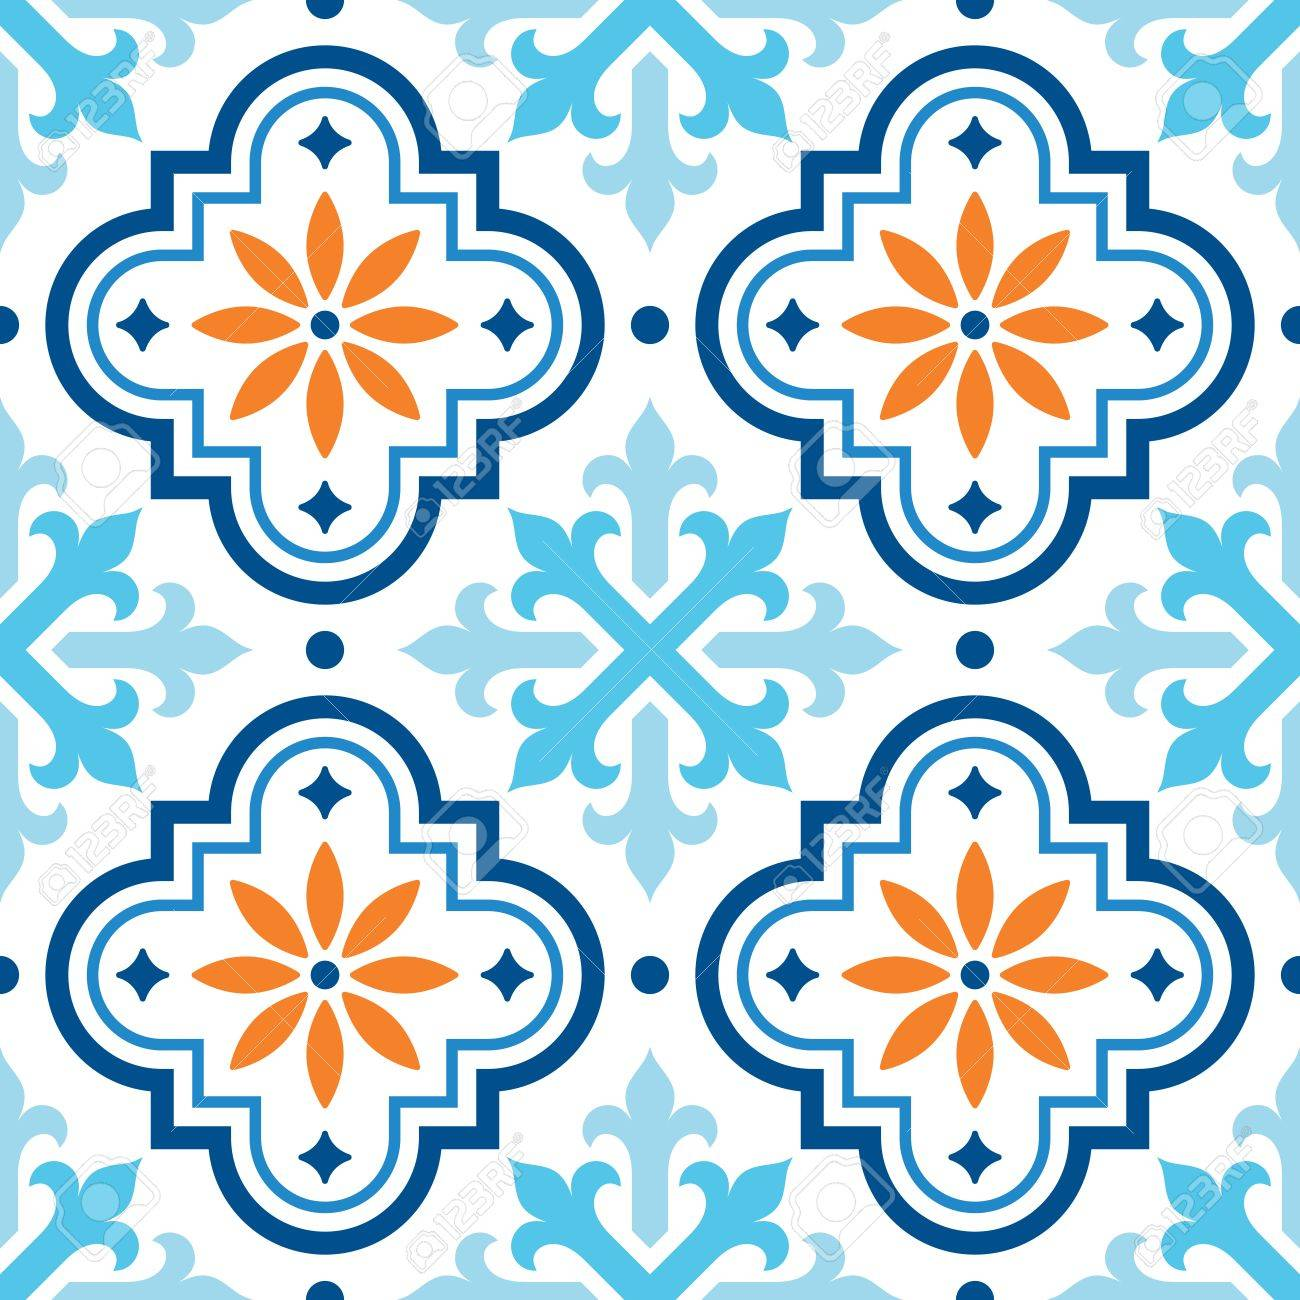 spanish tile pattern moroccan tiles design seamless blue and